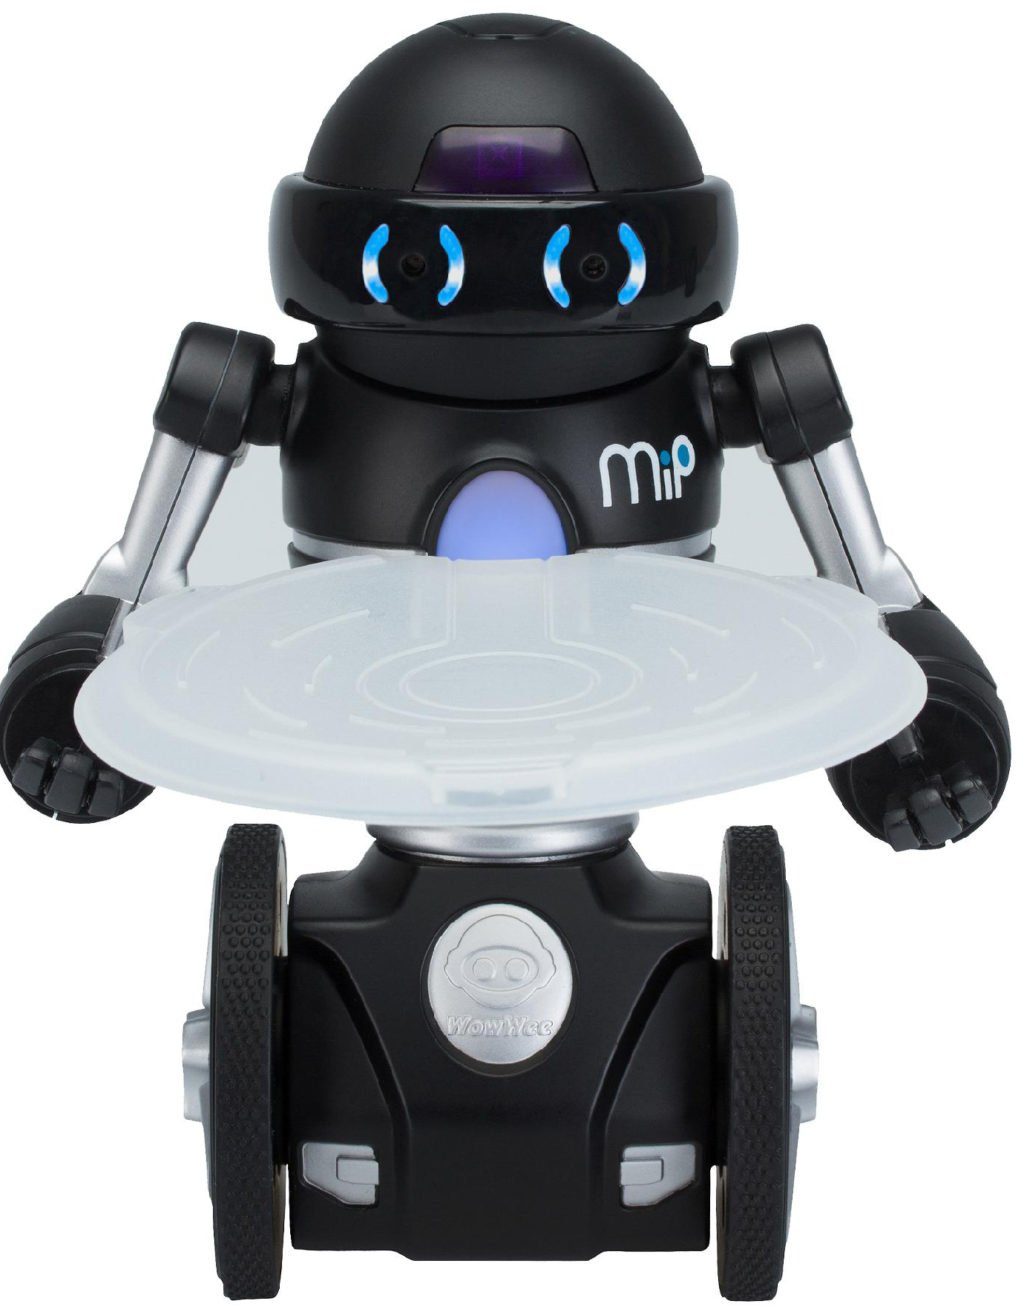 Coolest Robot Toys : Of the coolest humanoid robot toys you need right now